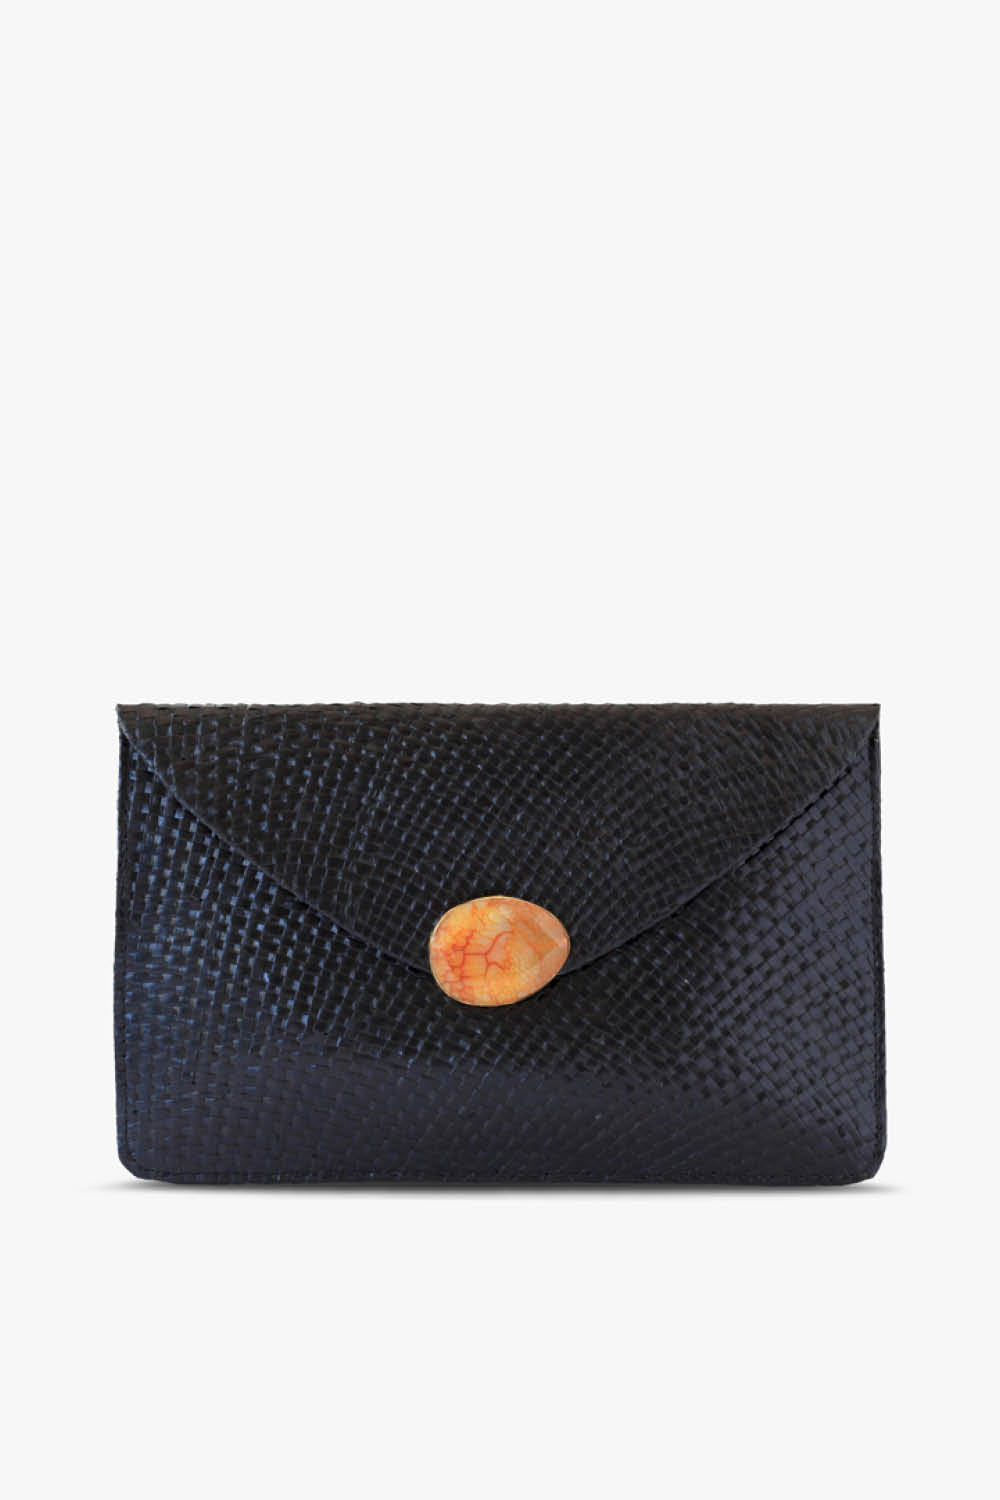 Capri Clutch in Black